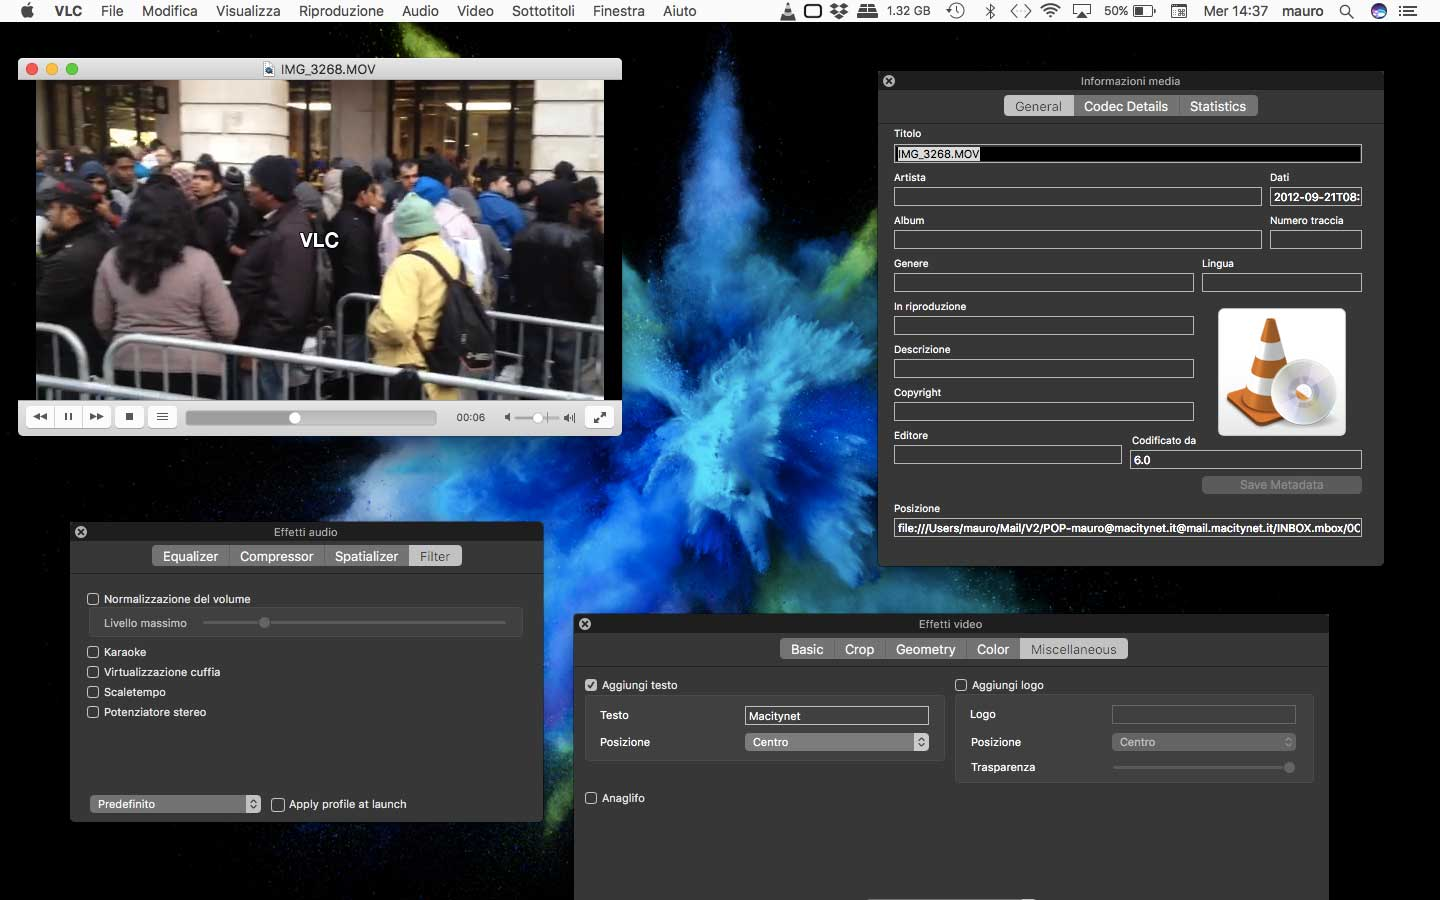 Vlc for ppc mac os x 10.4